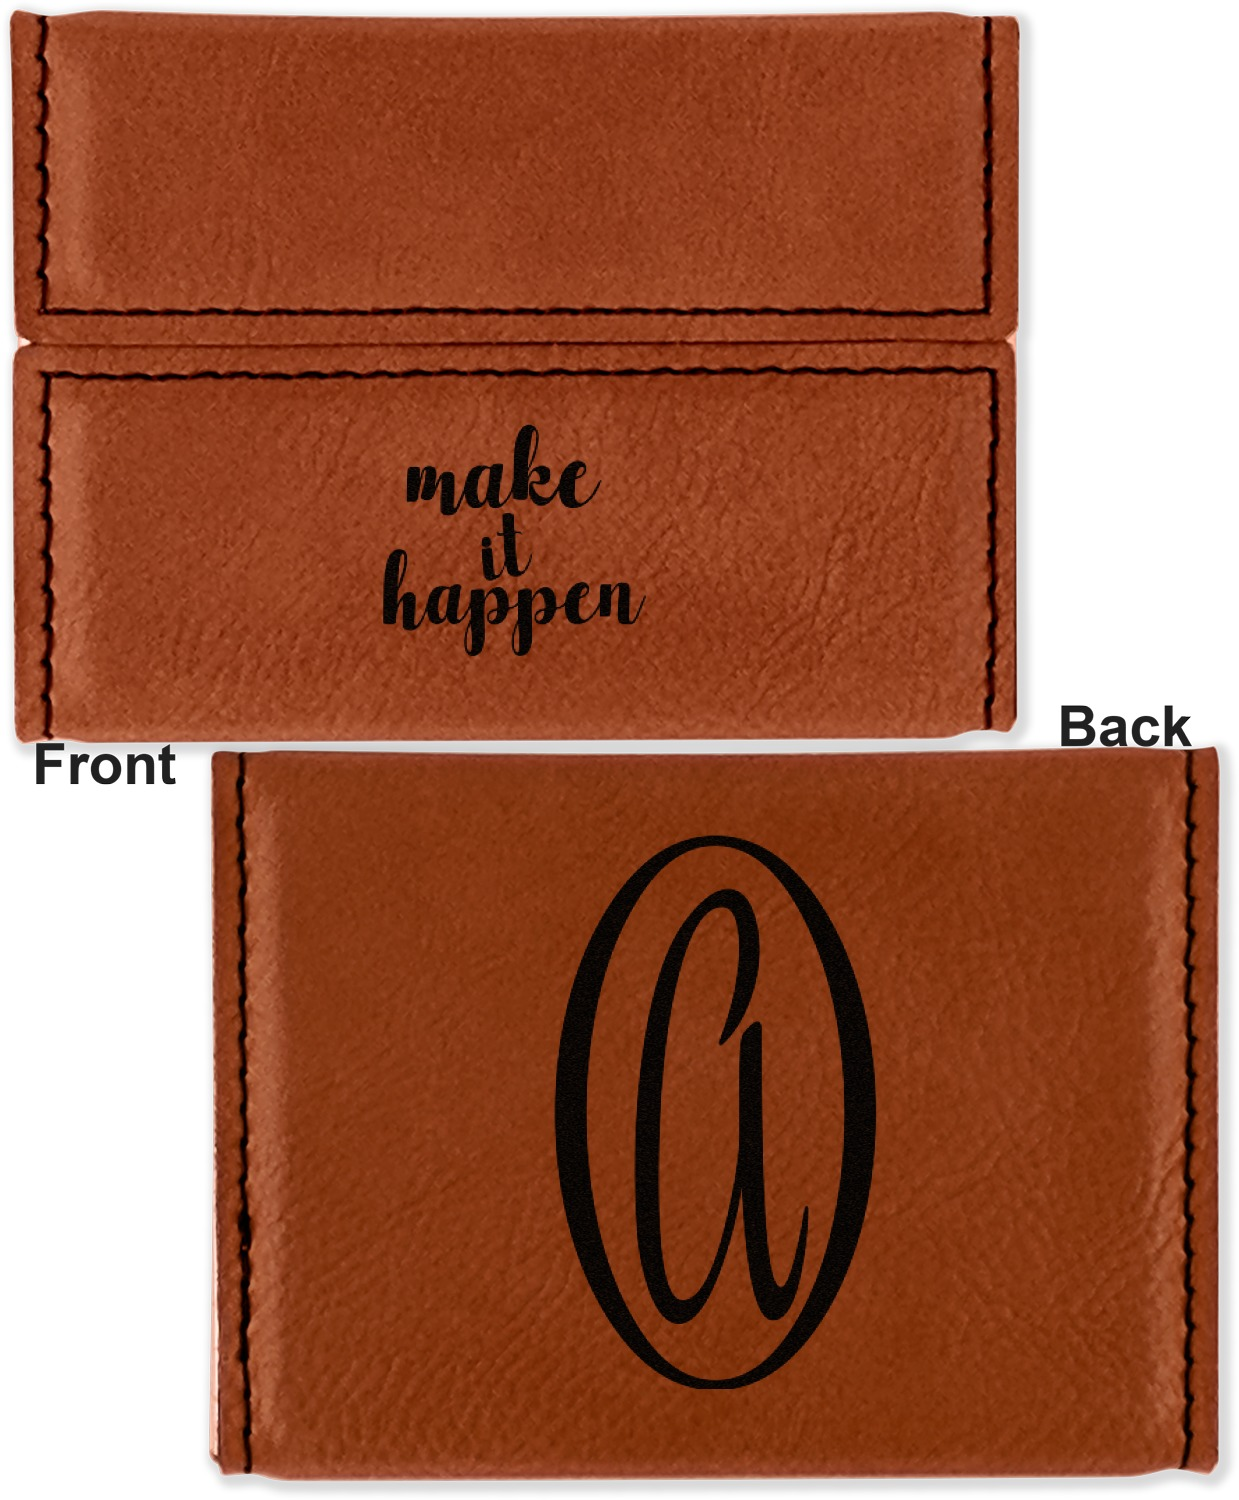 inspirational quotes and sayings leatherette business card holder